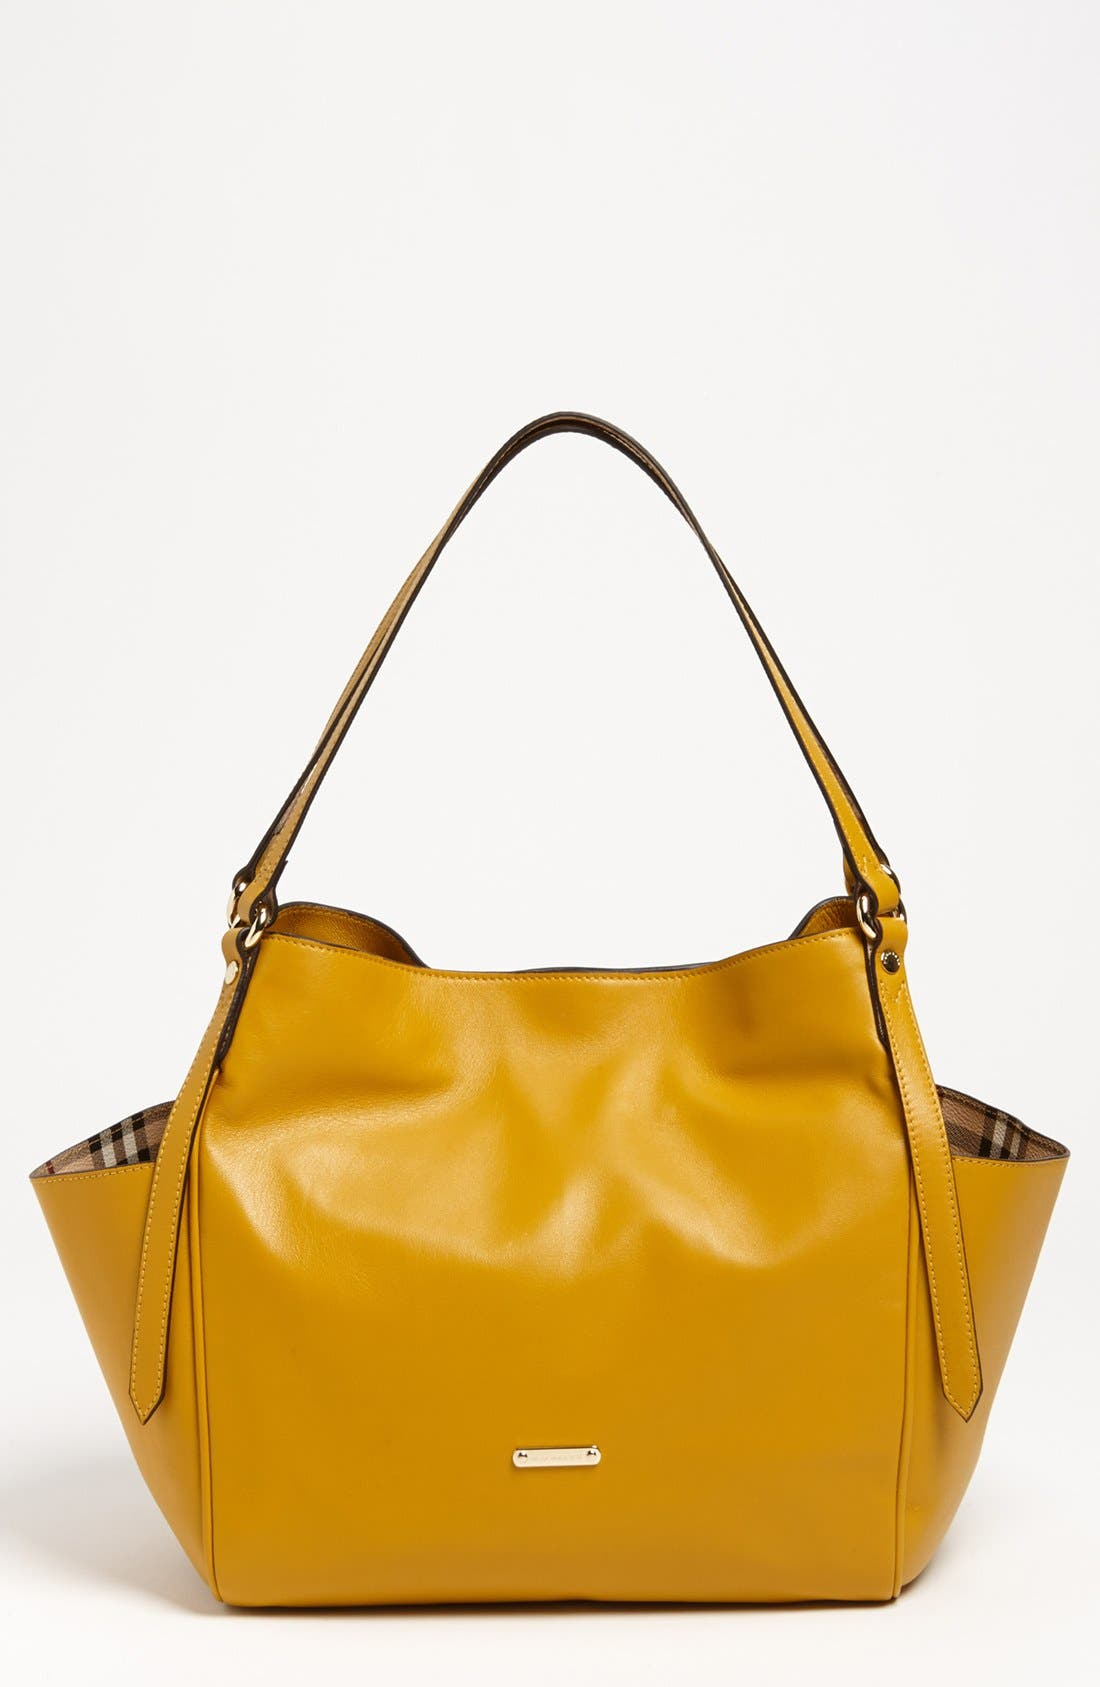 Main Image - Burberry 'Canterbury - Small' Leather Tote